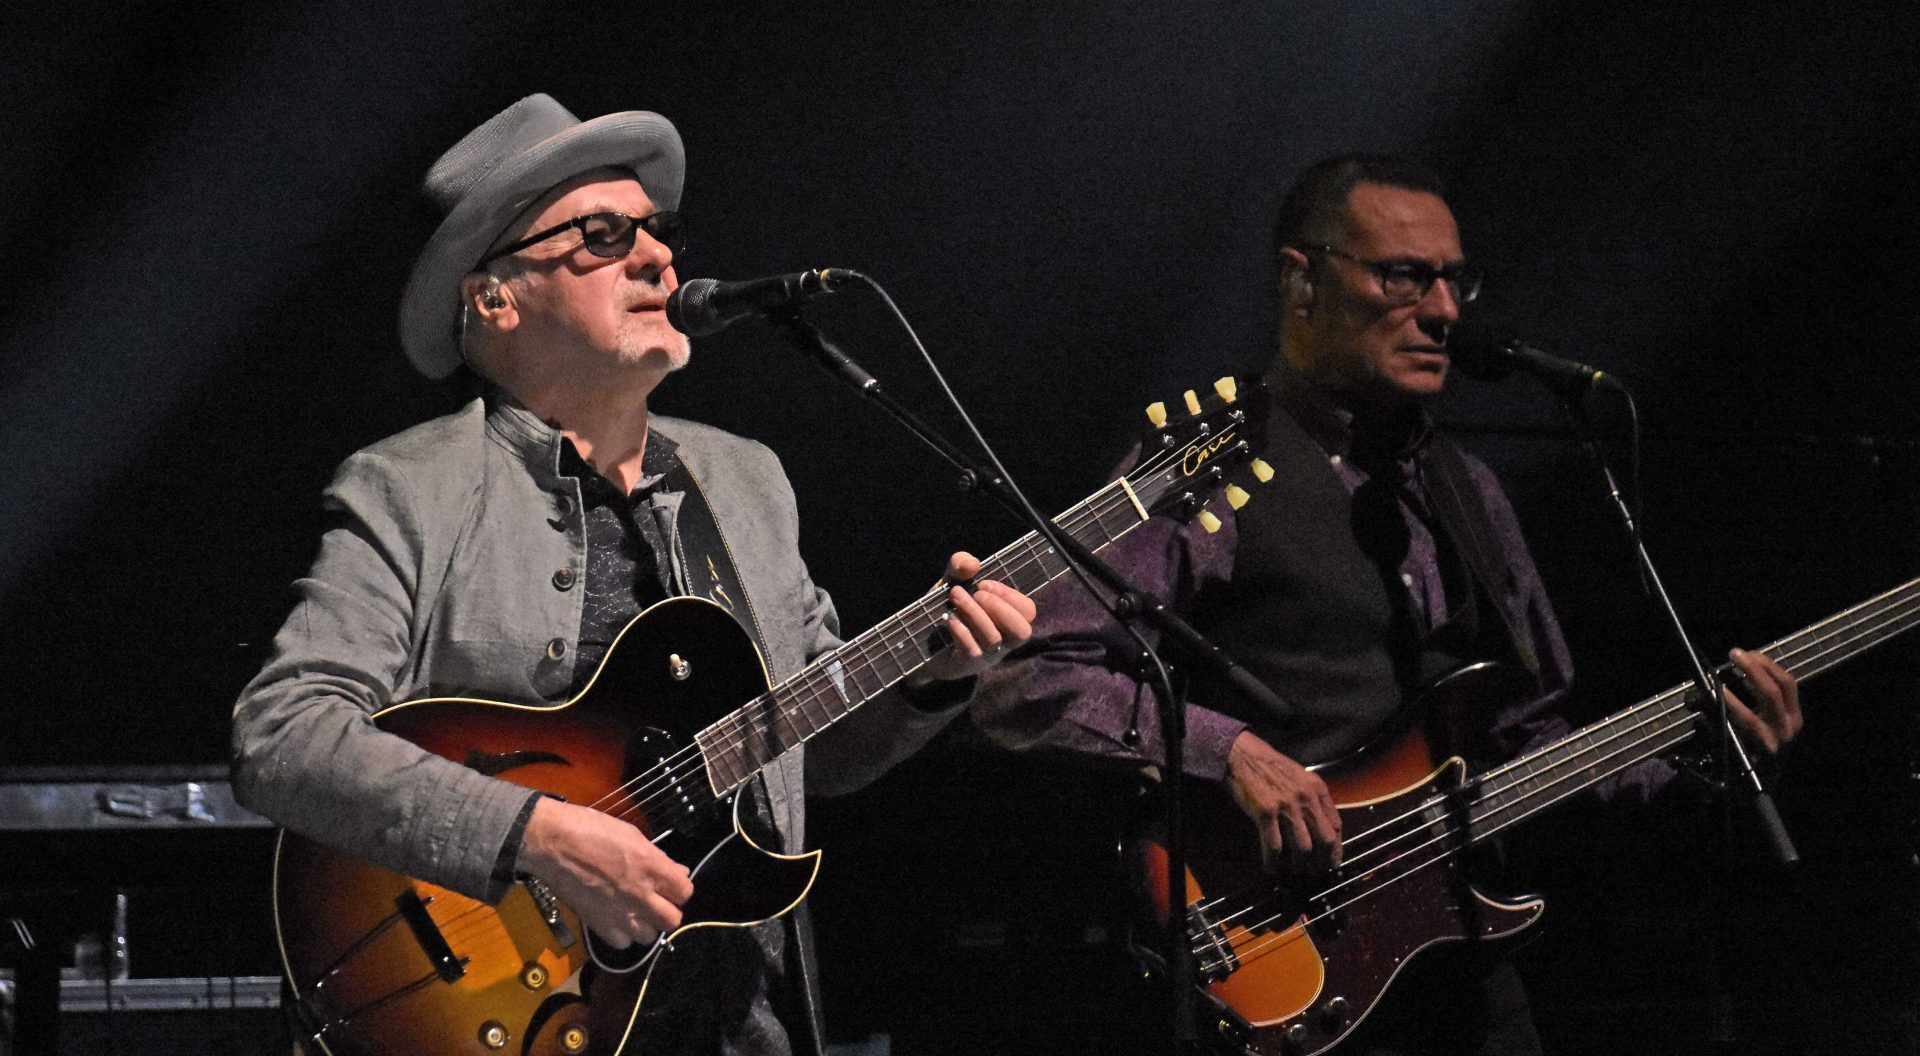 Paul Carrack on tour in 2020